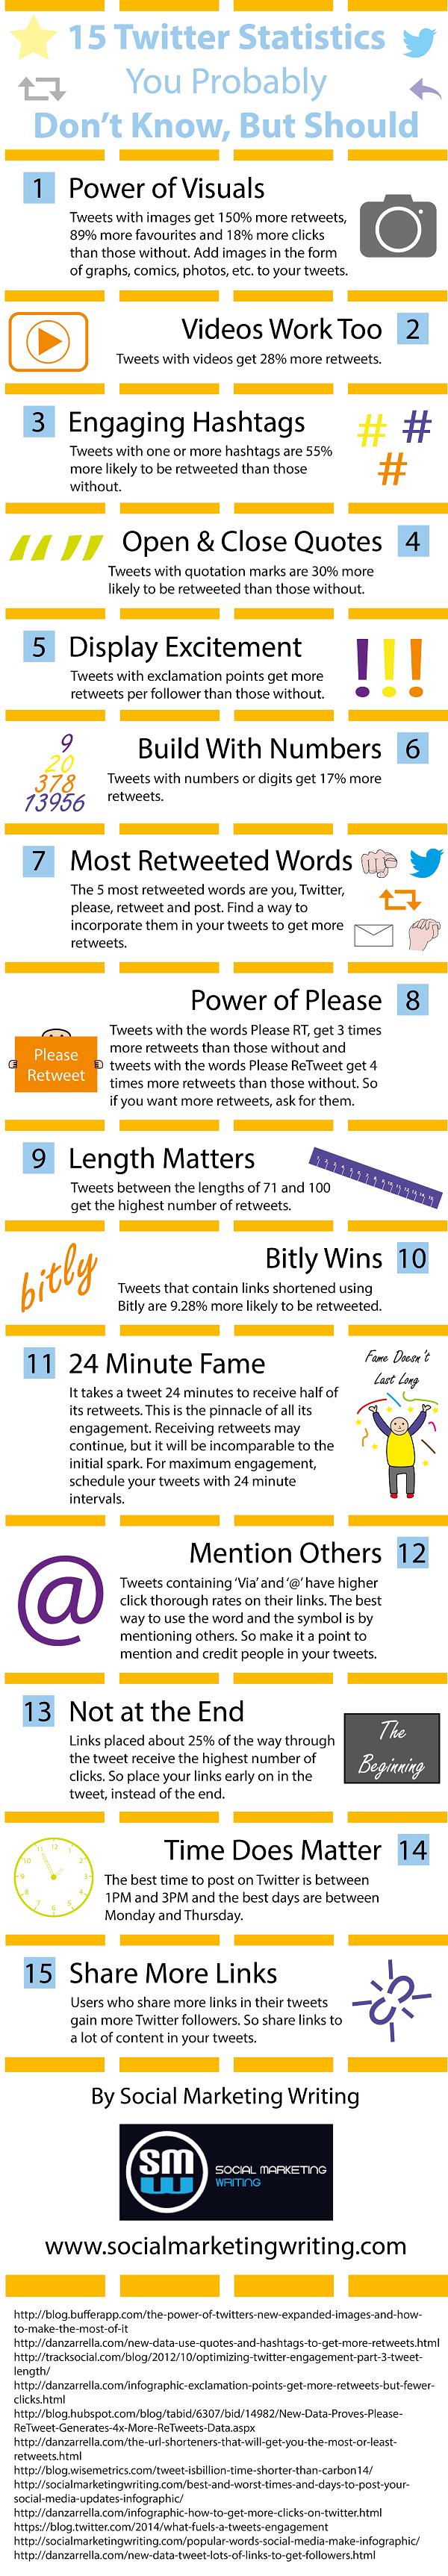 15 Twitter Statistics You Probably Don't Know But Should Infographic